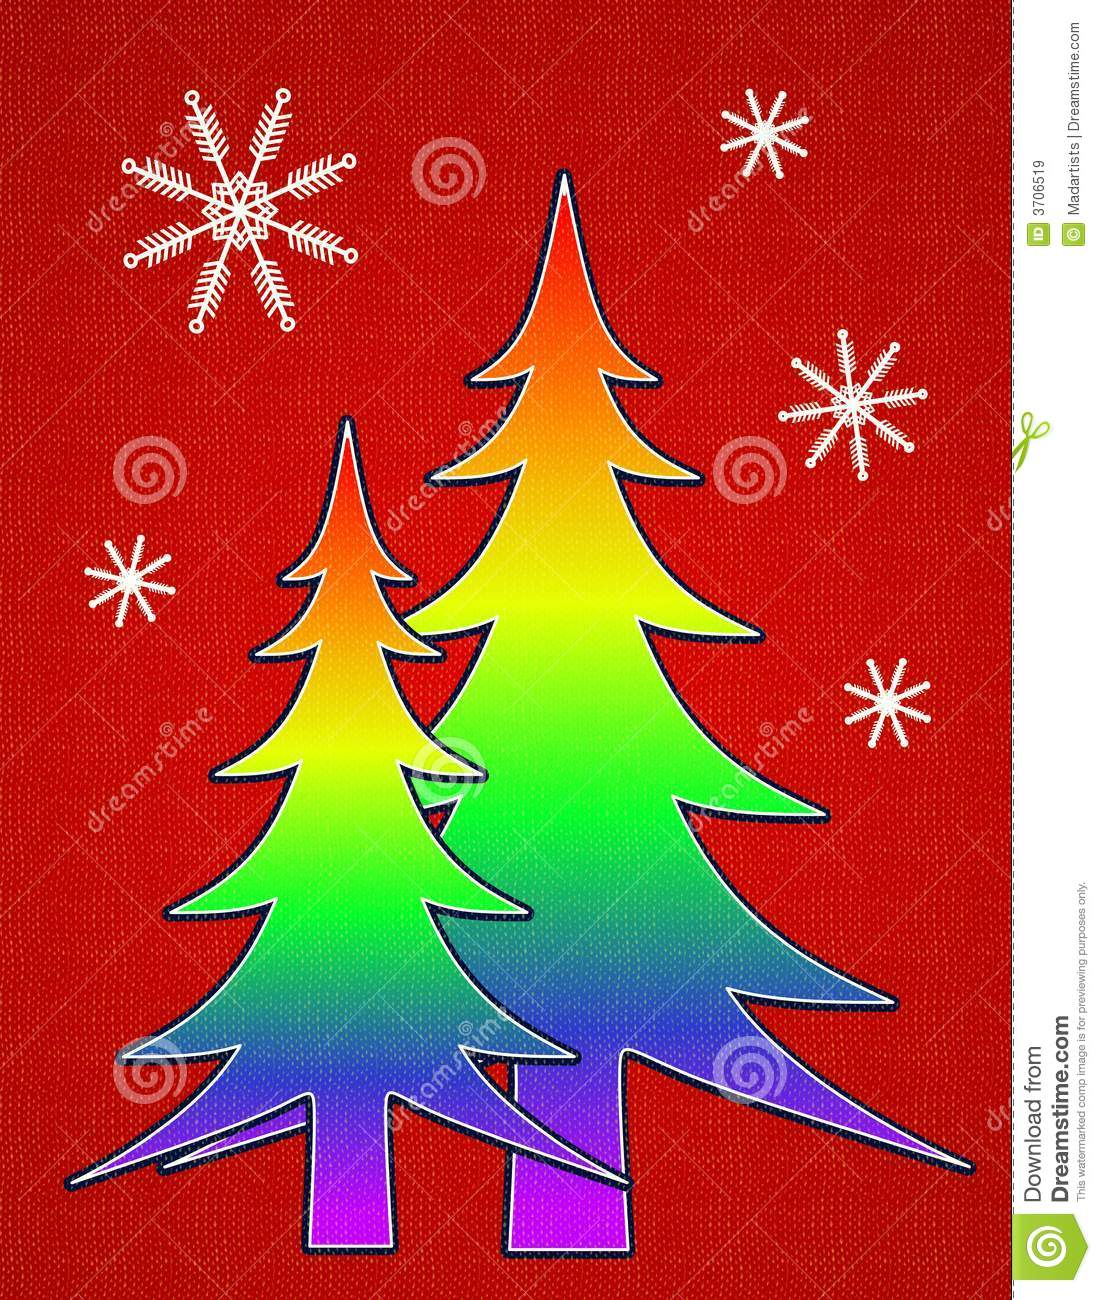 with snowflake designs and a touch of texture Rainbow gay